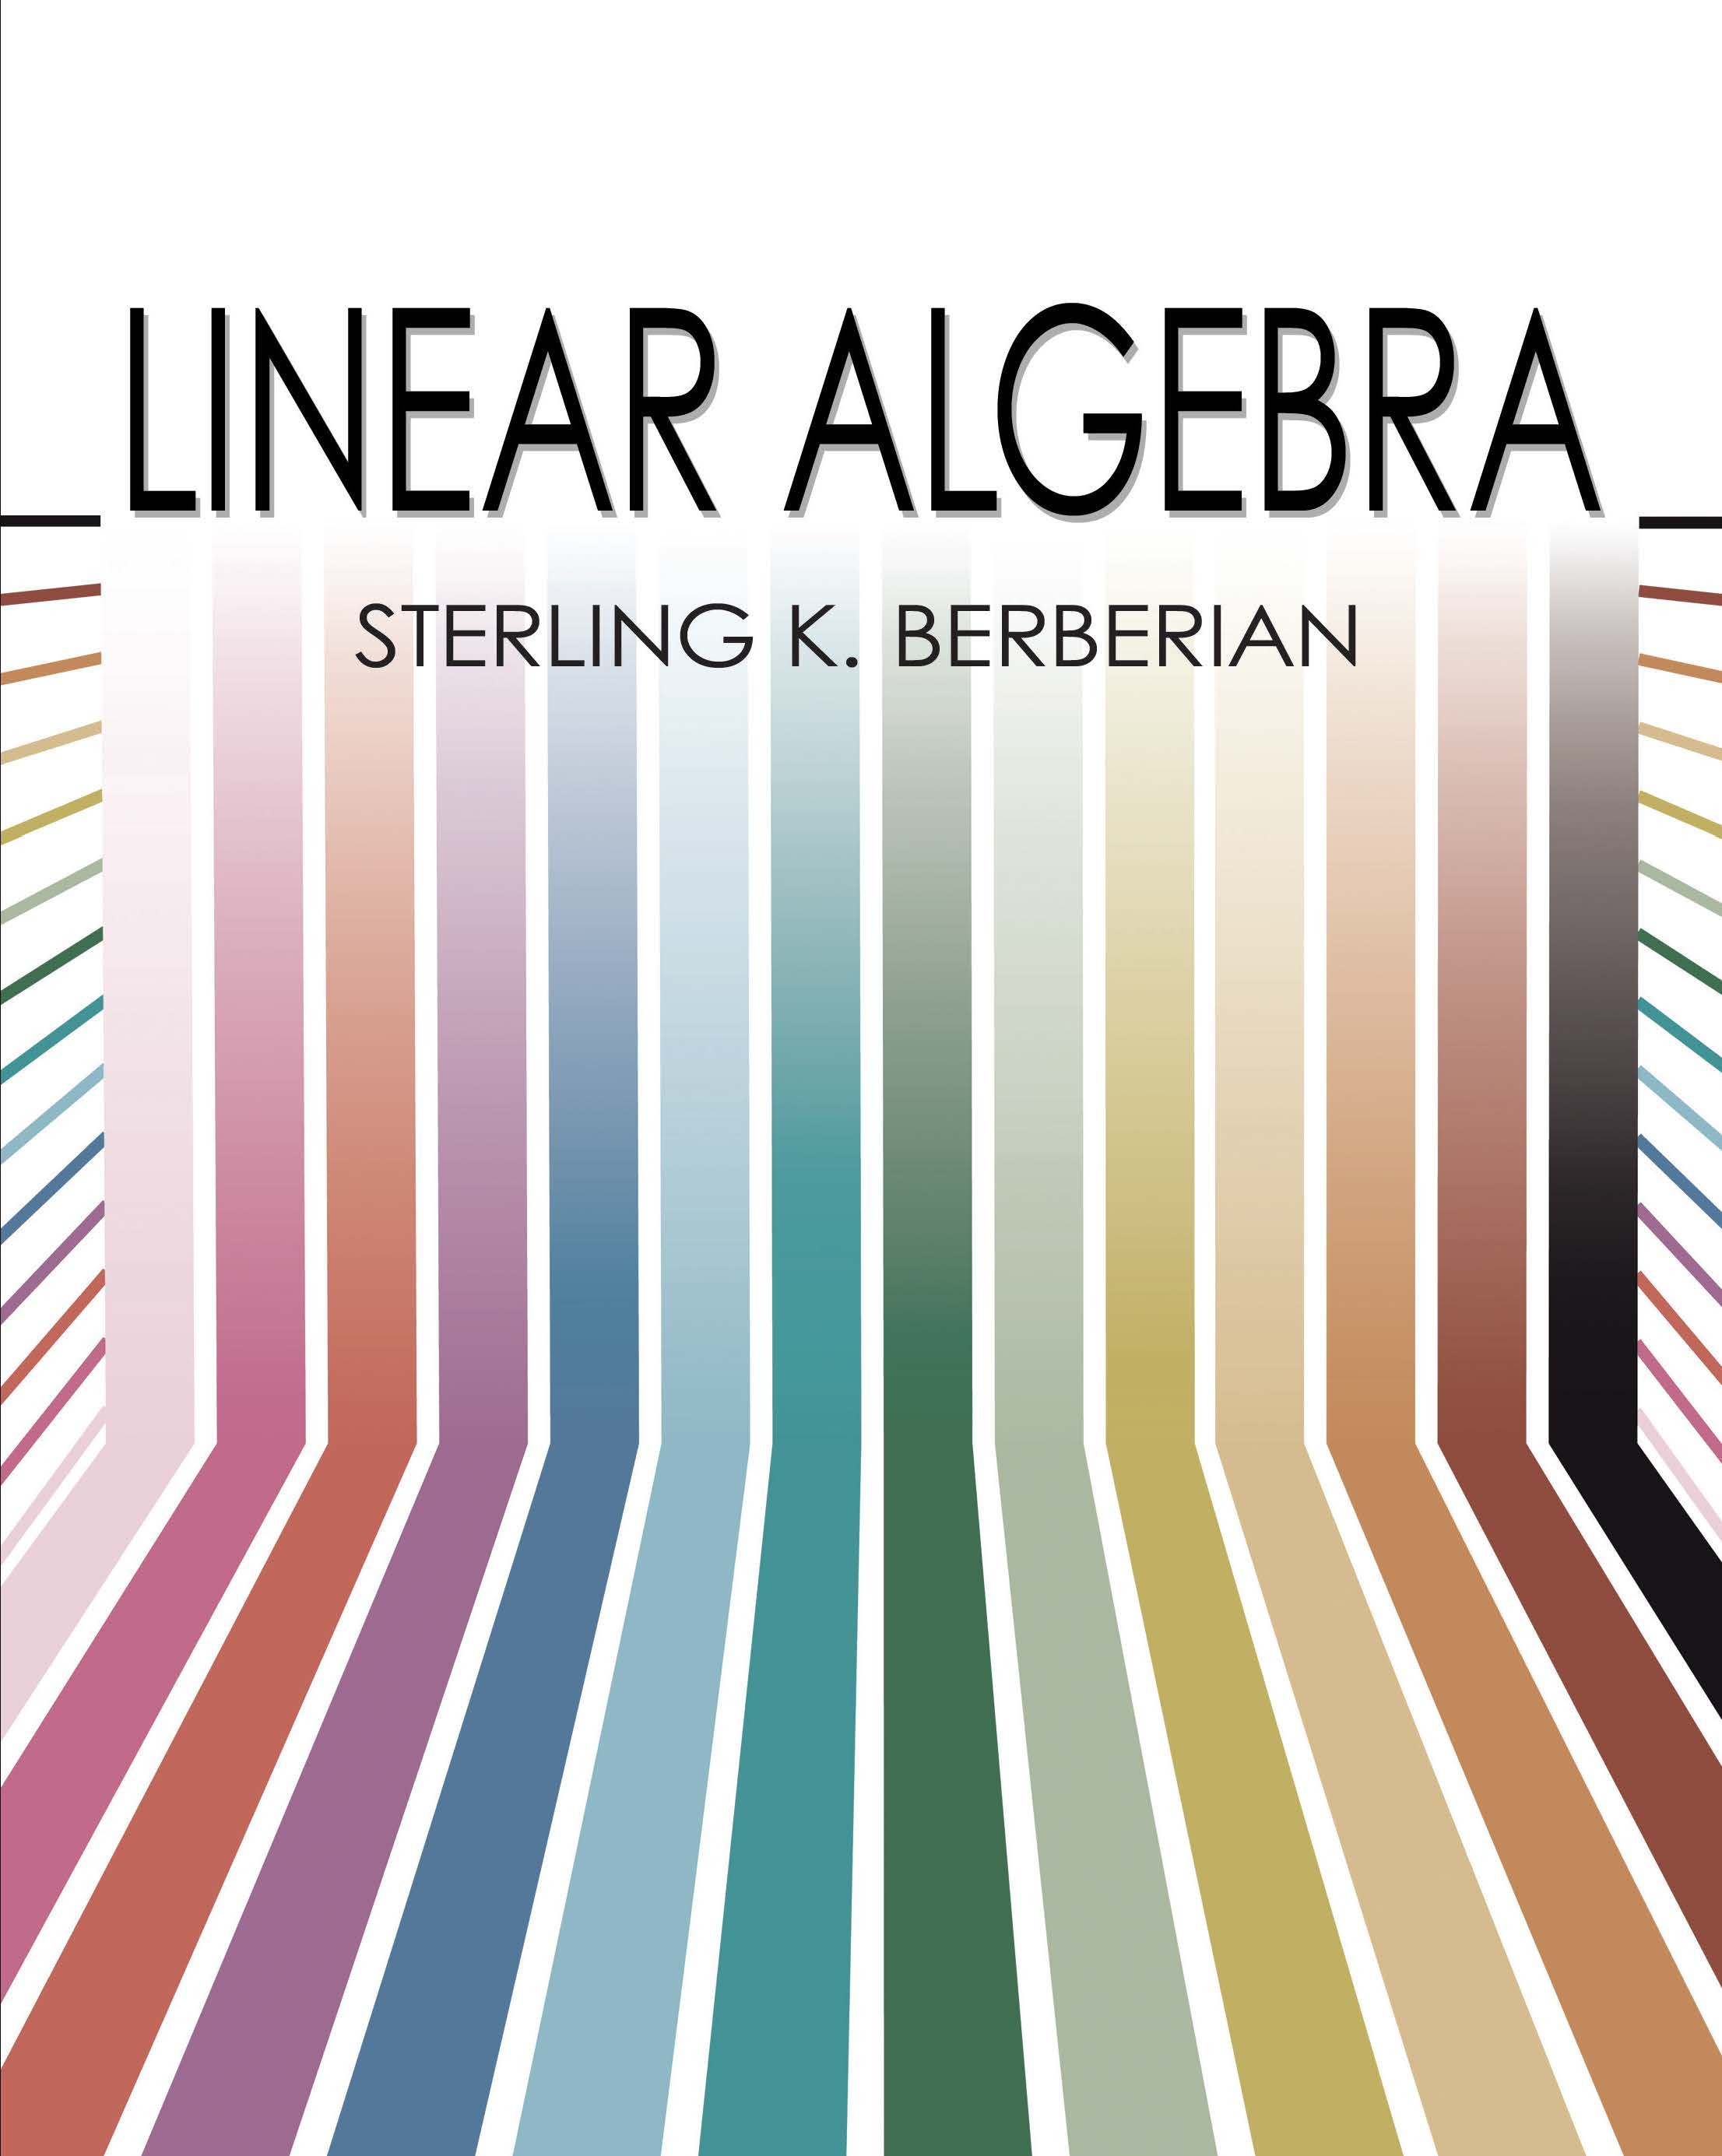 Linear Algebra by Sterling K  Berberian | Read online | PDF, eBook